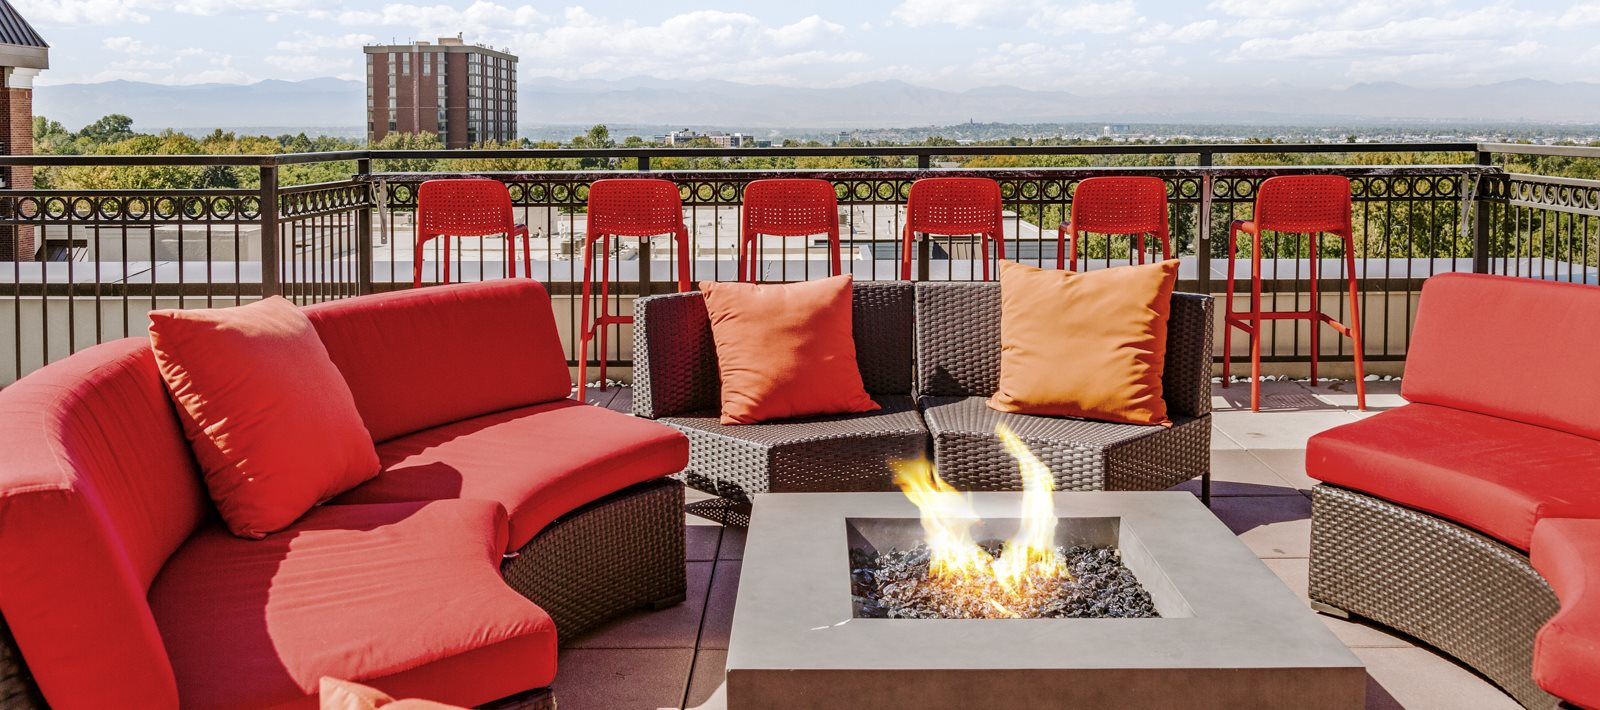 Kent Place Residences Rooftop Firepit and Seating